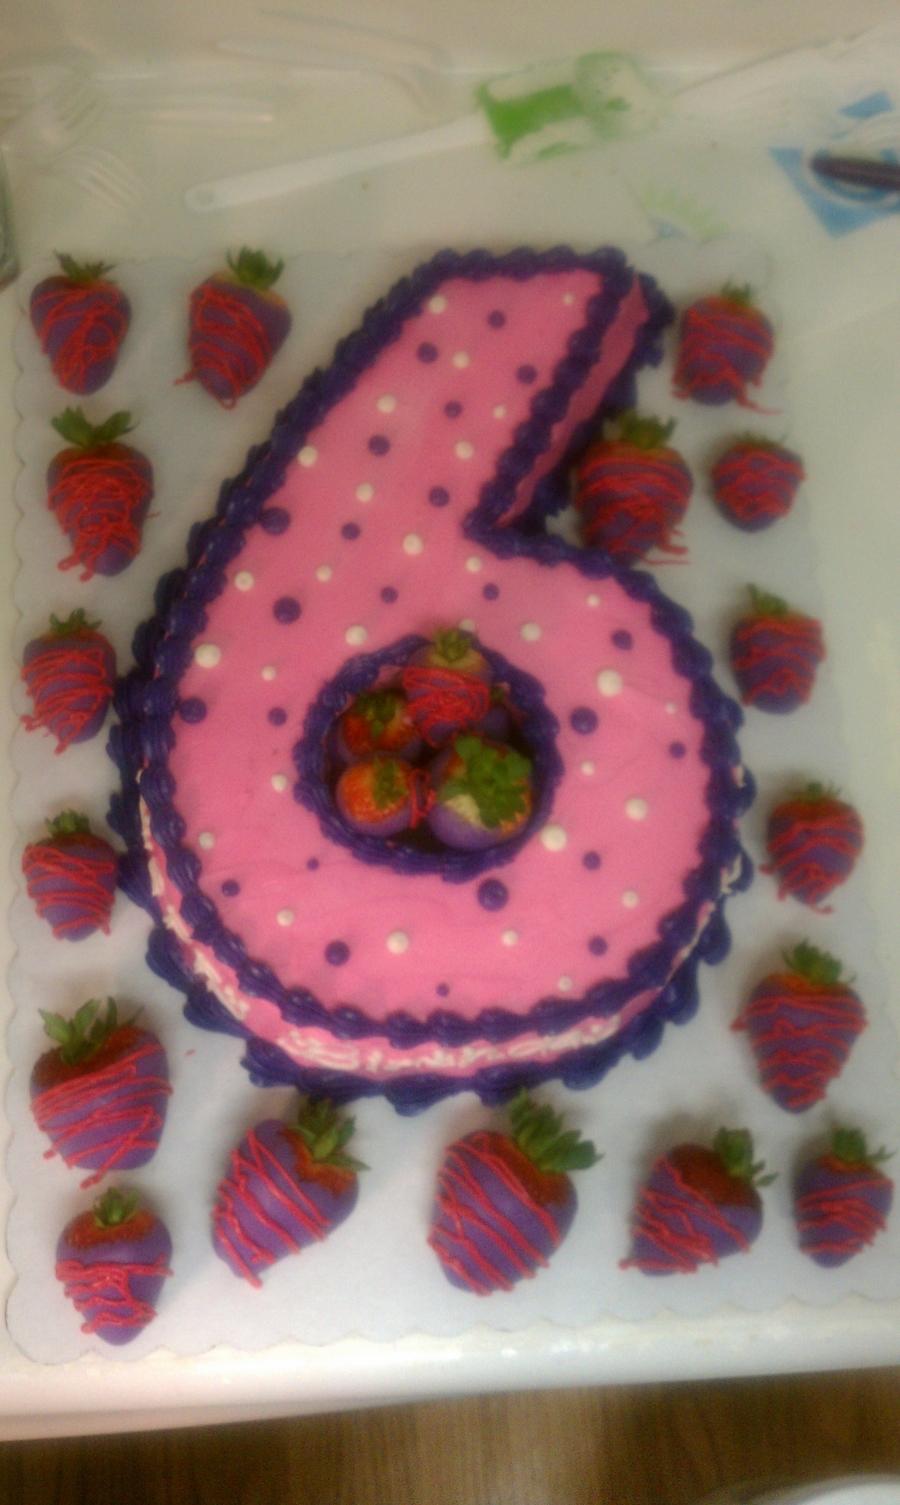 #6 With Strawberries on Cake Central